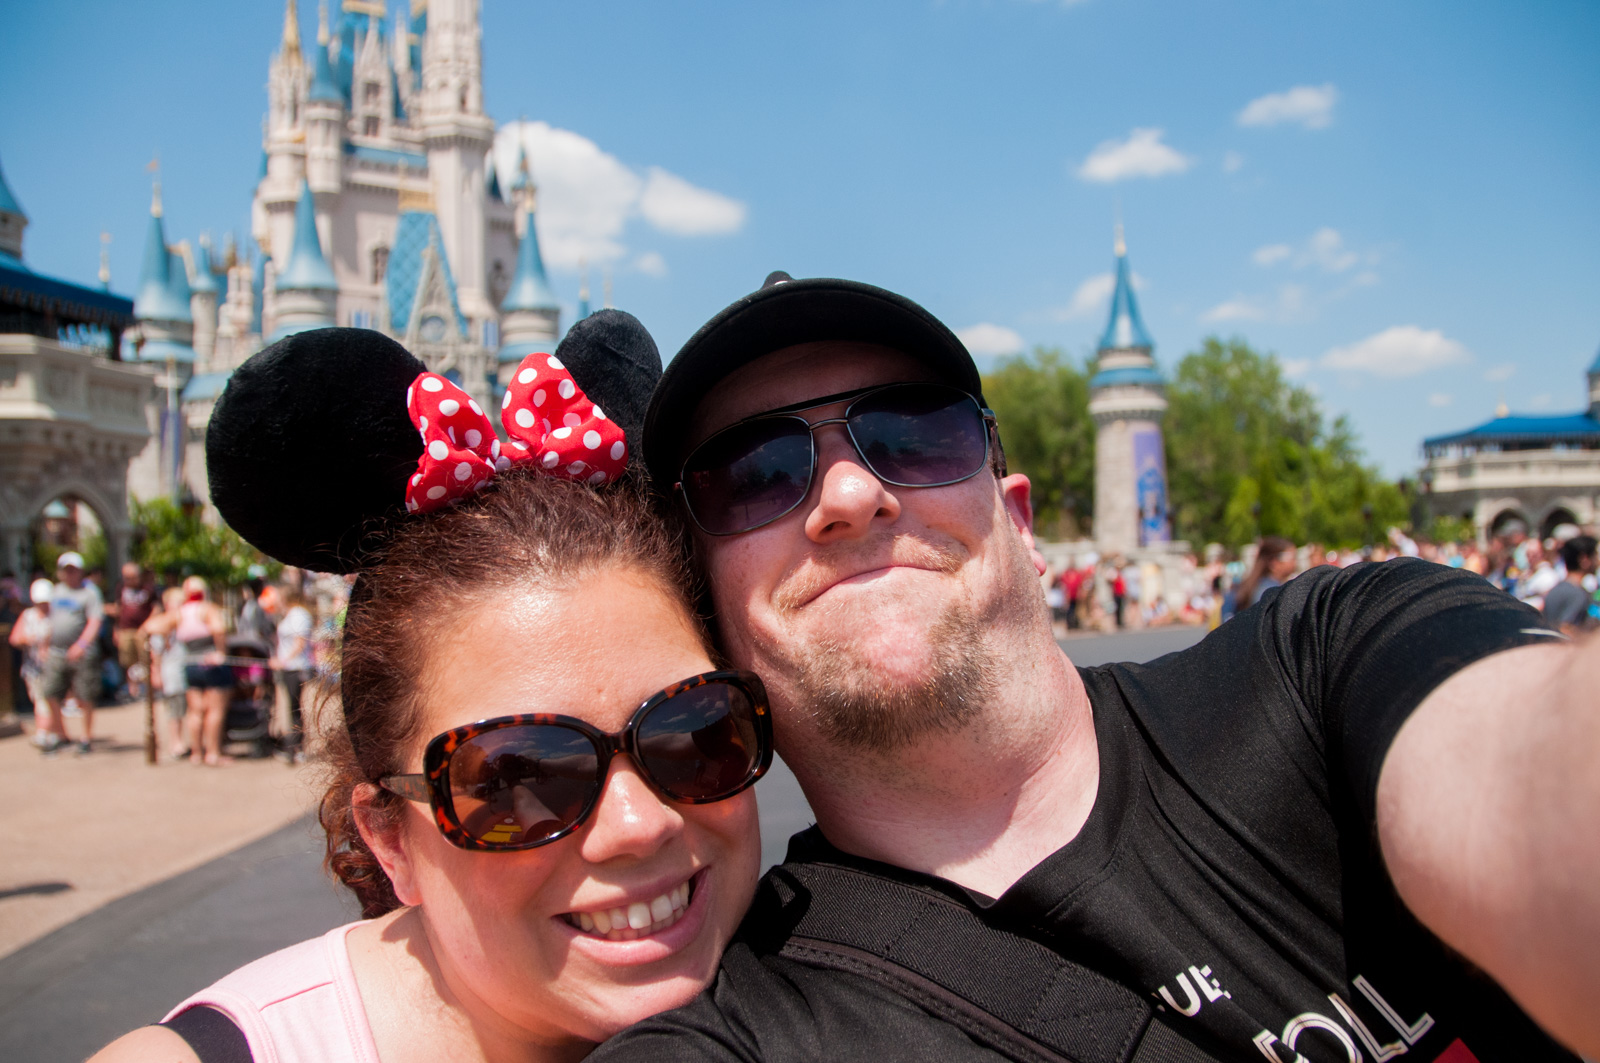 Lessons learned from our first trip to Disney